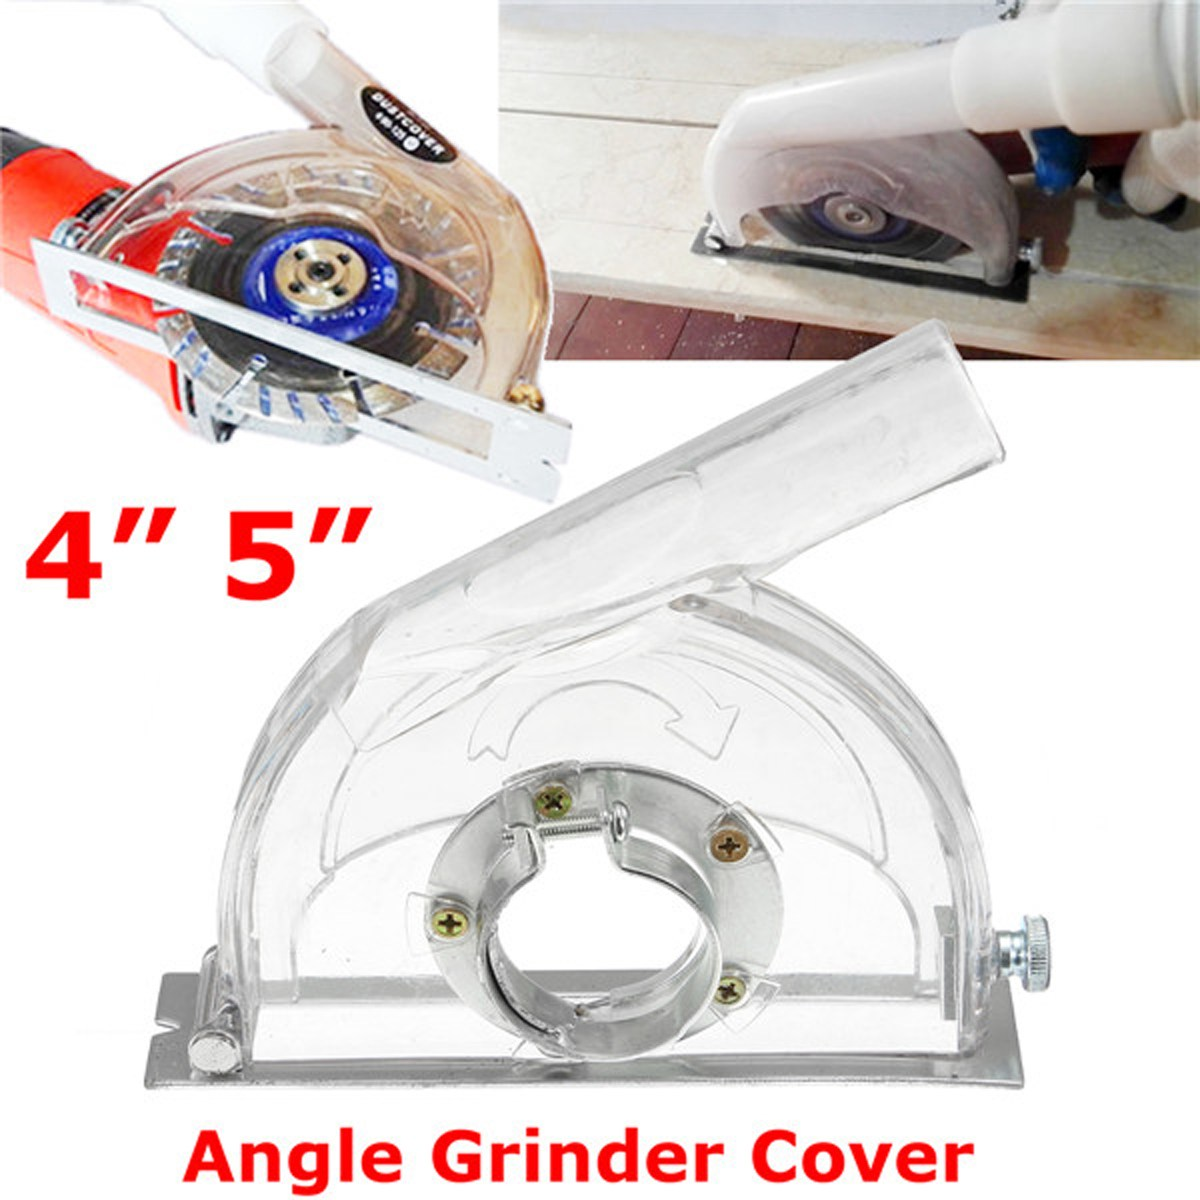 Transparent Grinding Dust Cover For 45 Angle Grinder & 3/4/5